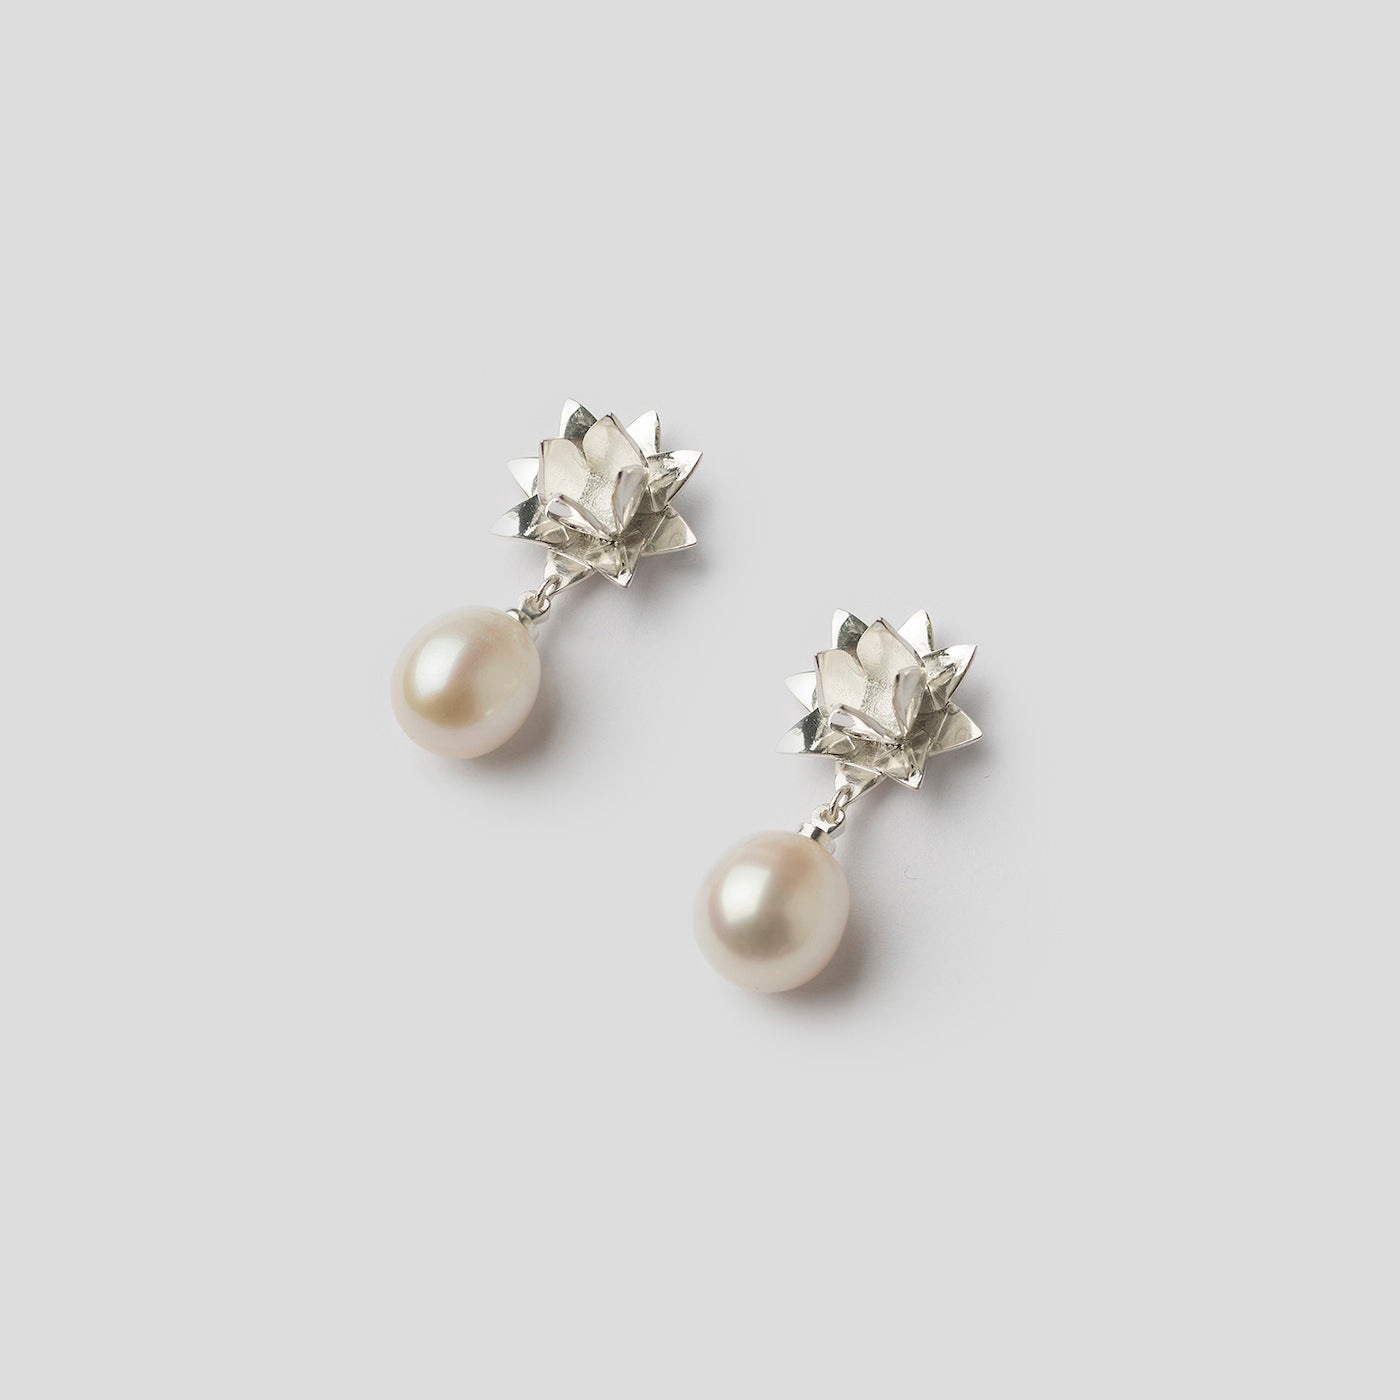 silver lotus pearl earrings on angle on white background